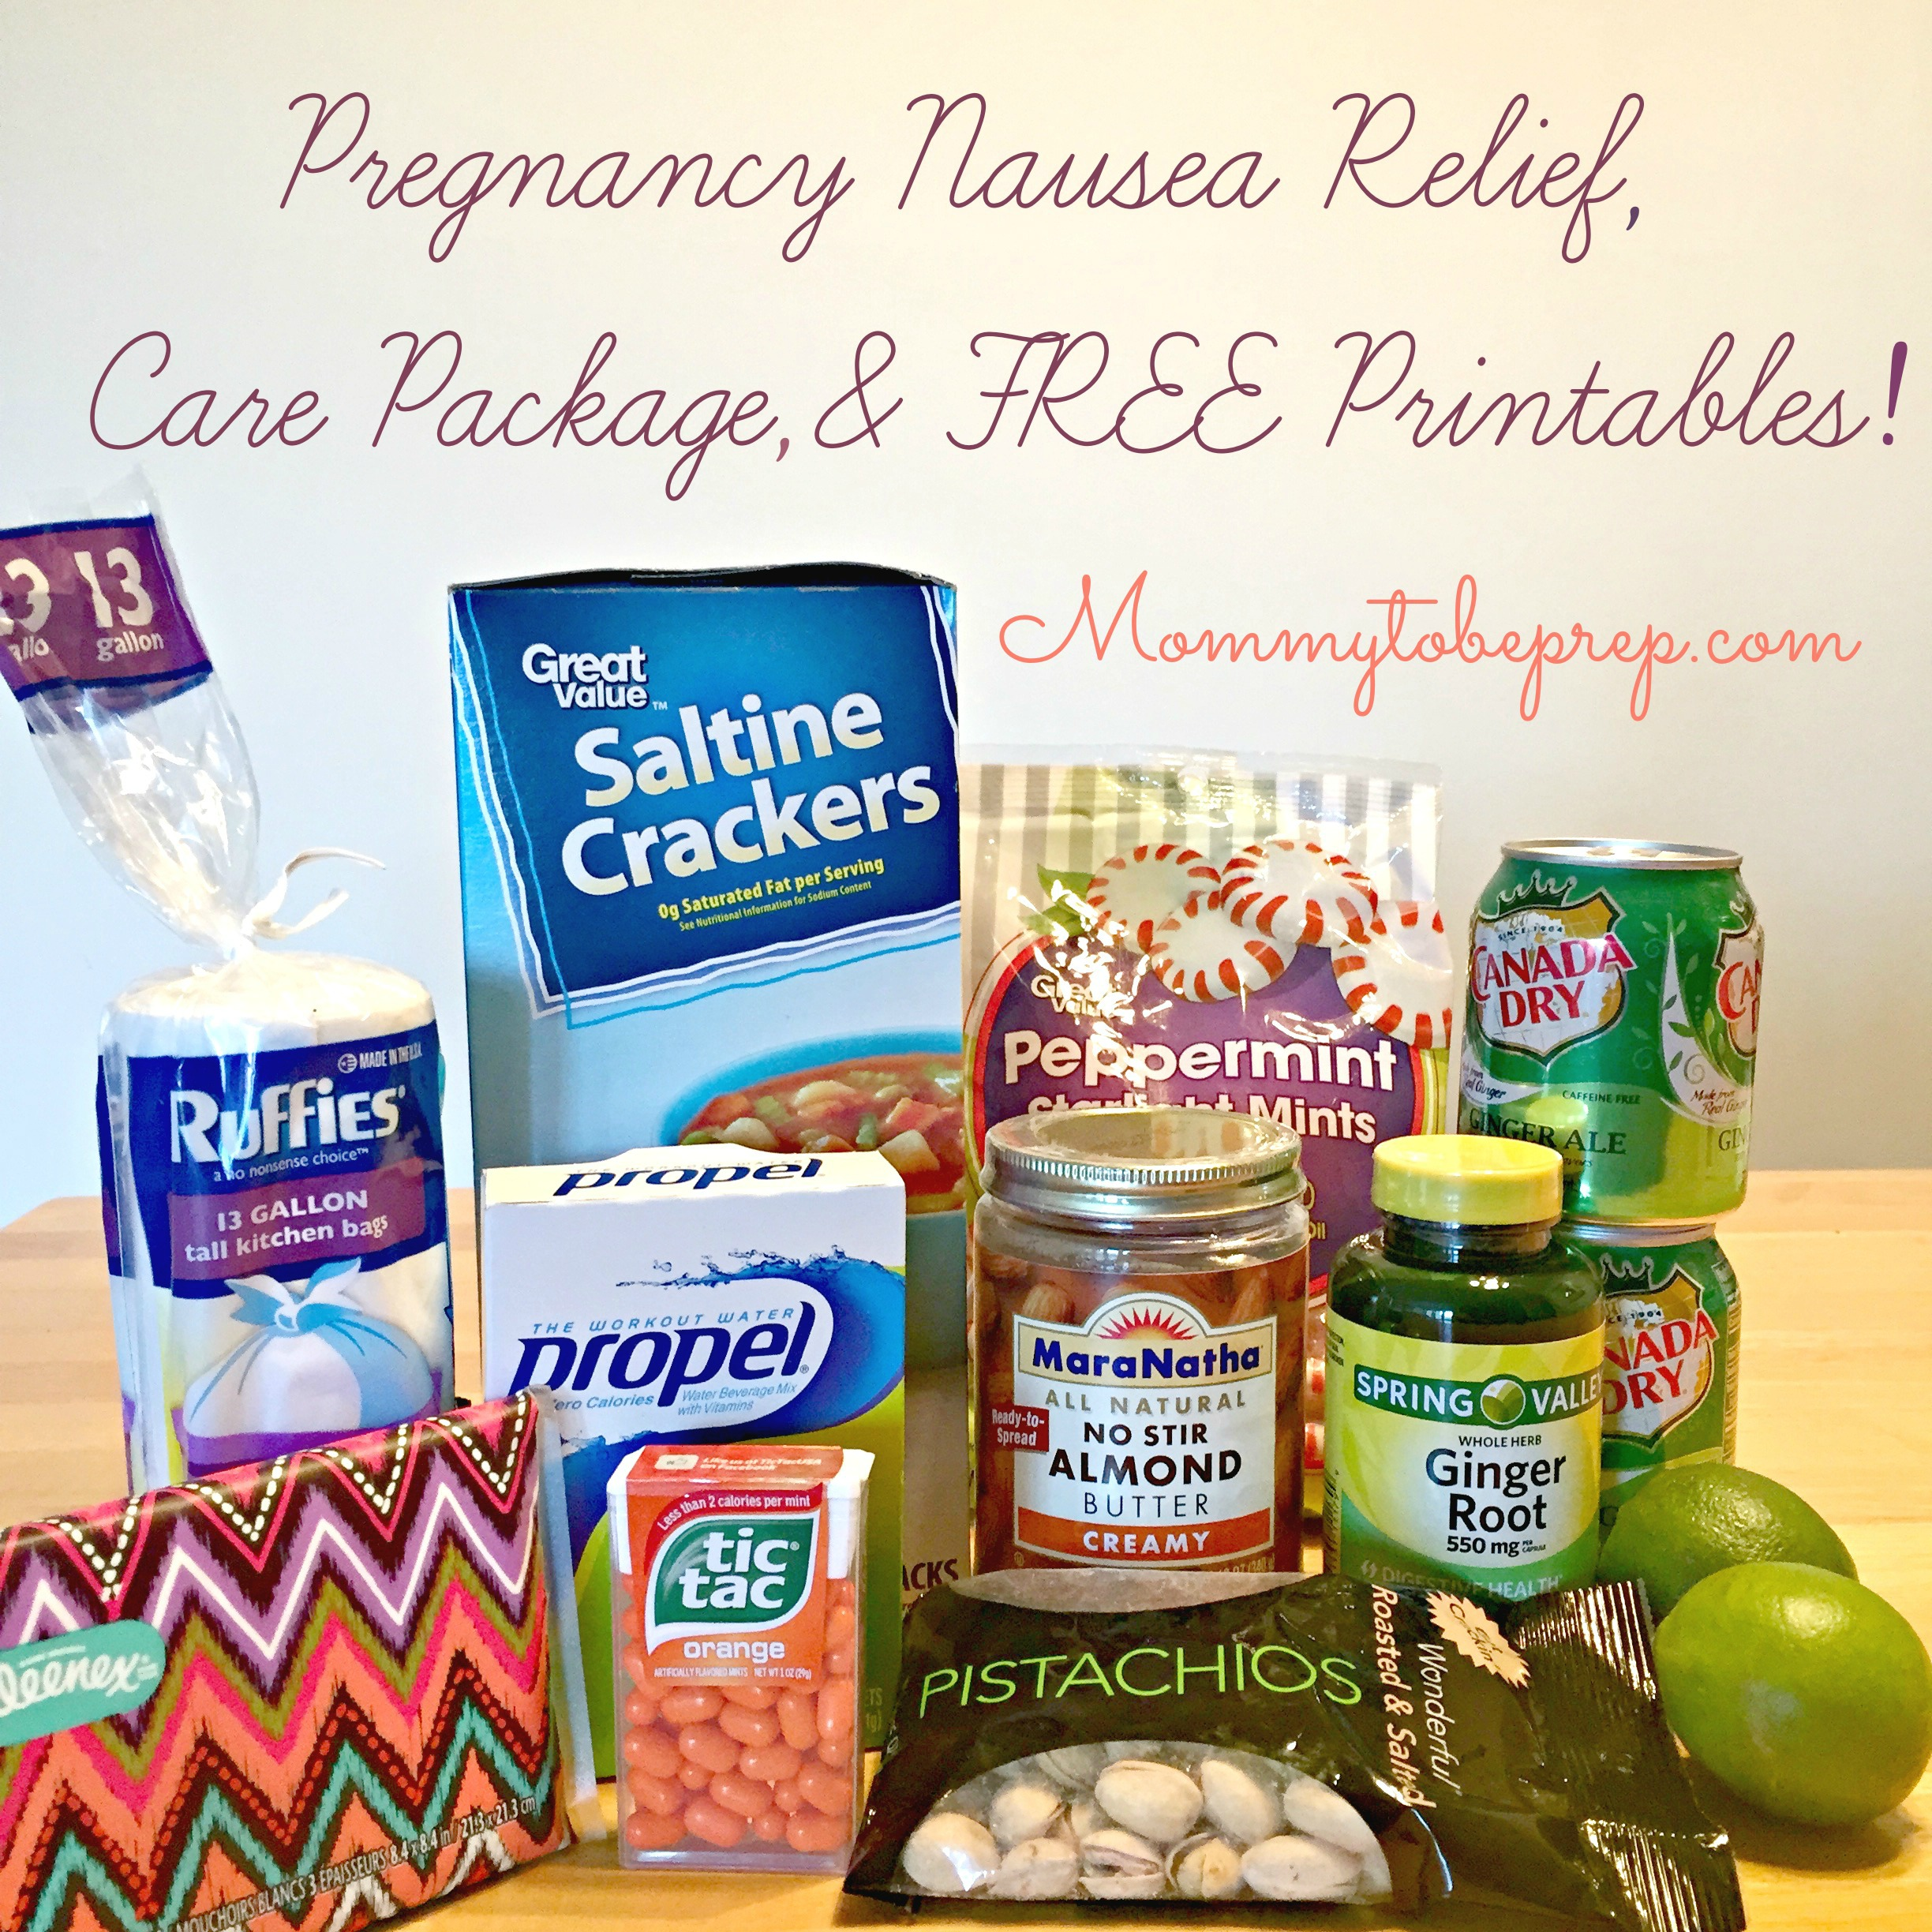 Pregnancy Nausea Relief, Care Package, & Free Printables